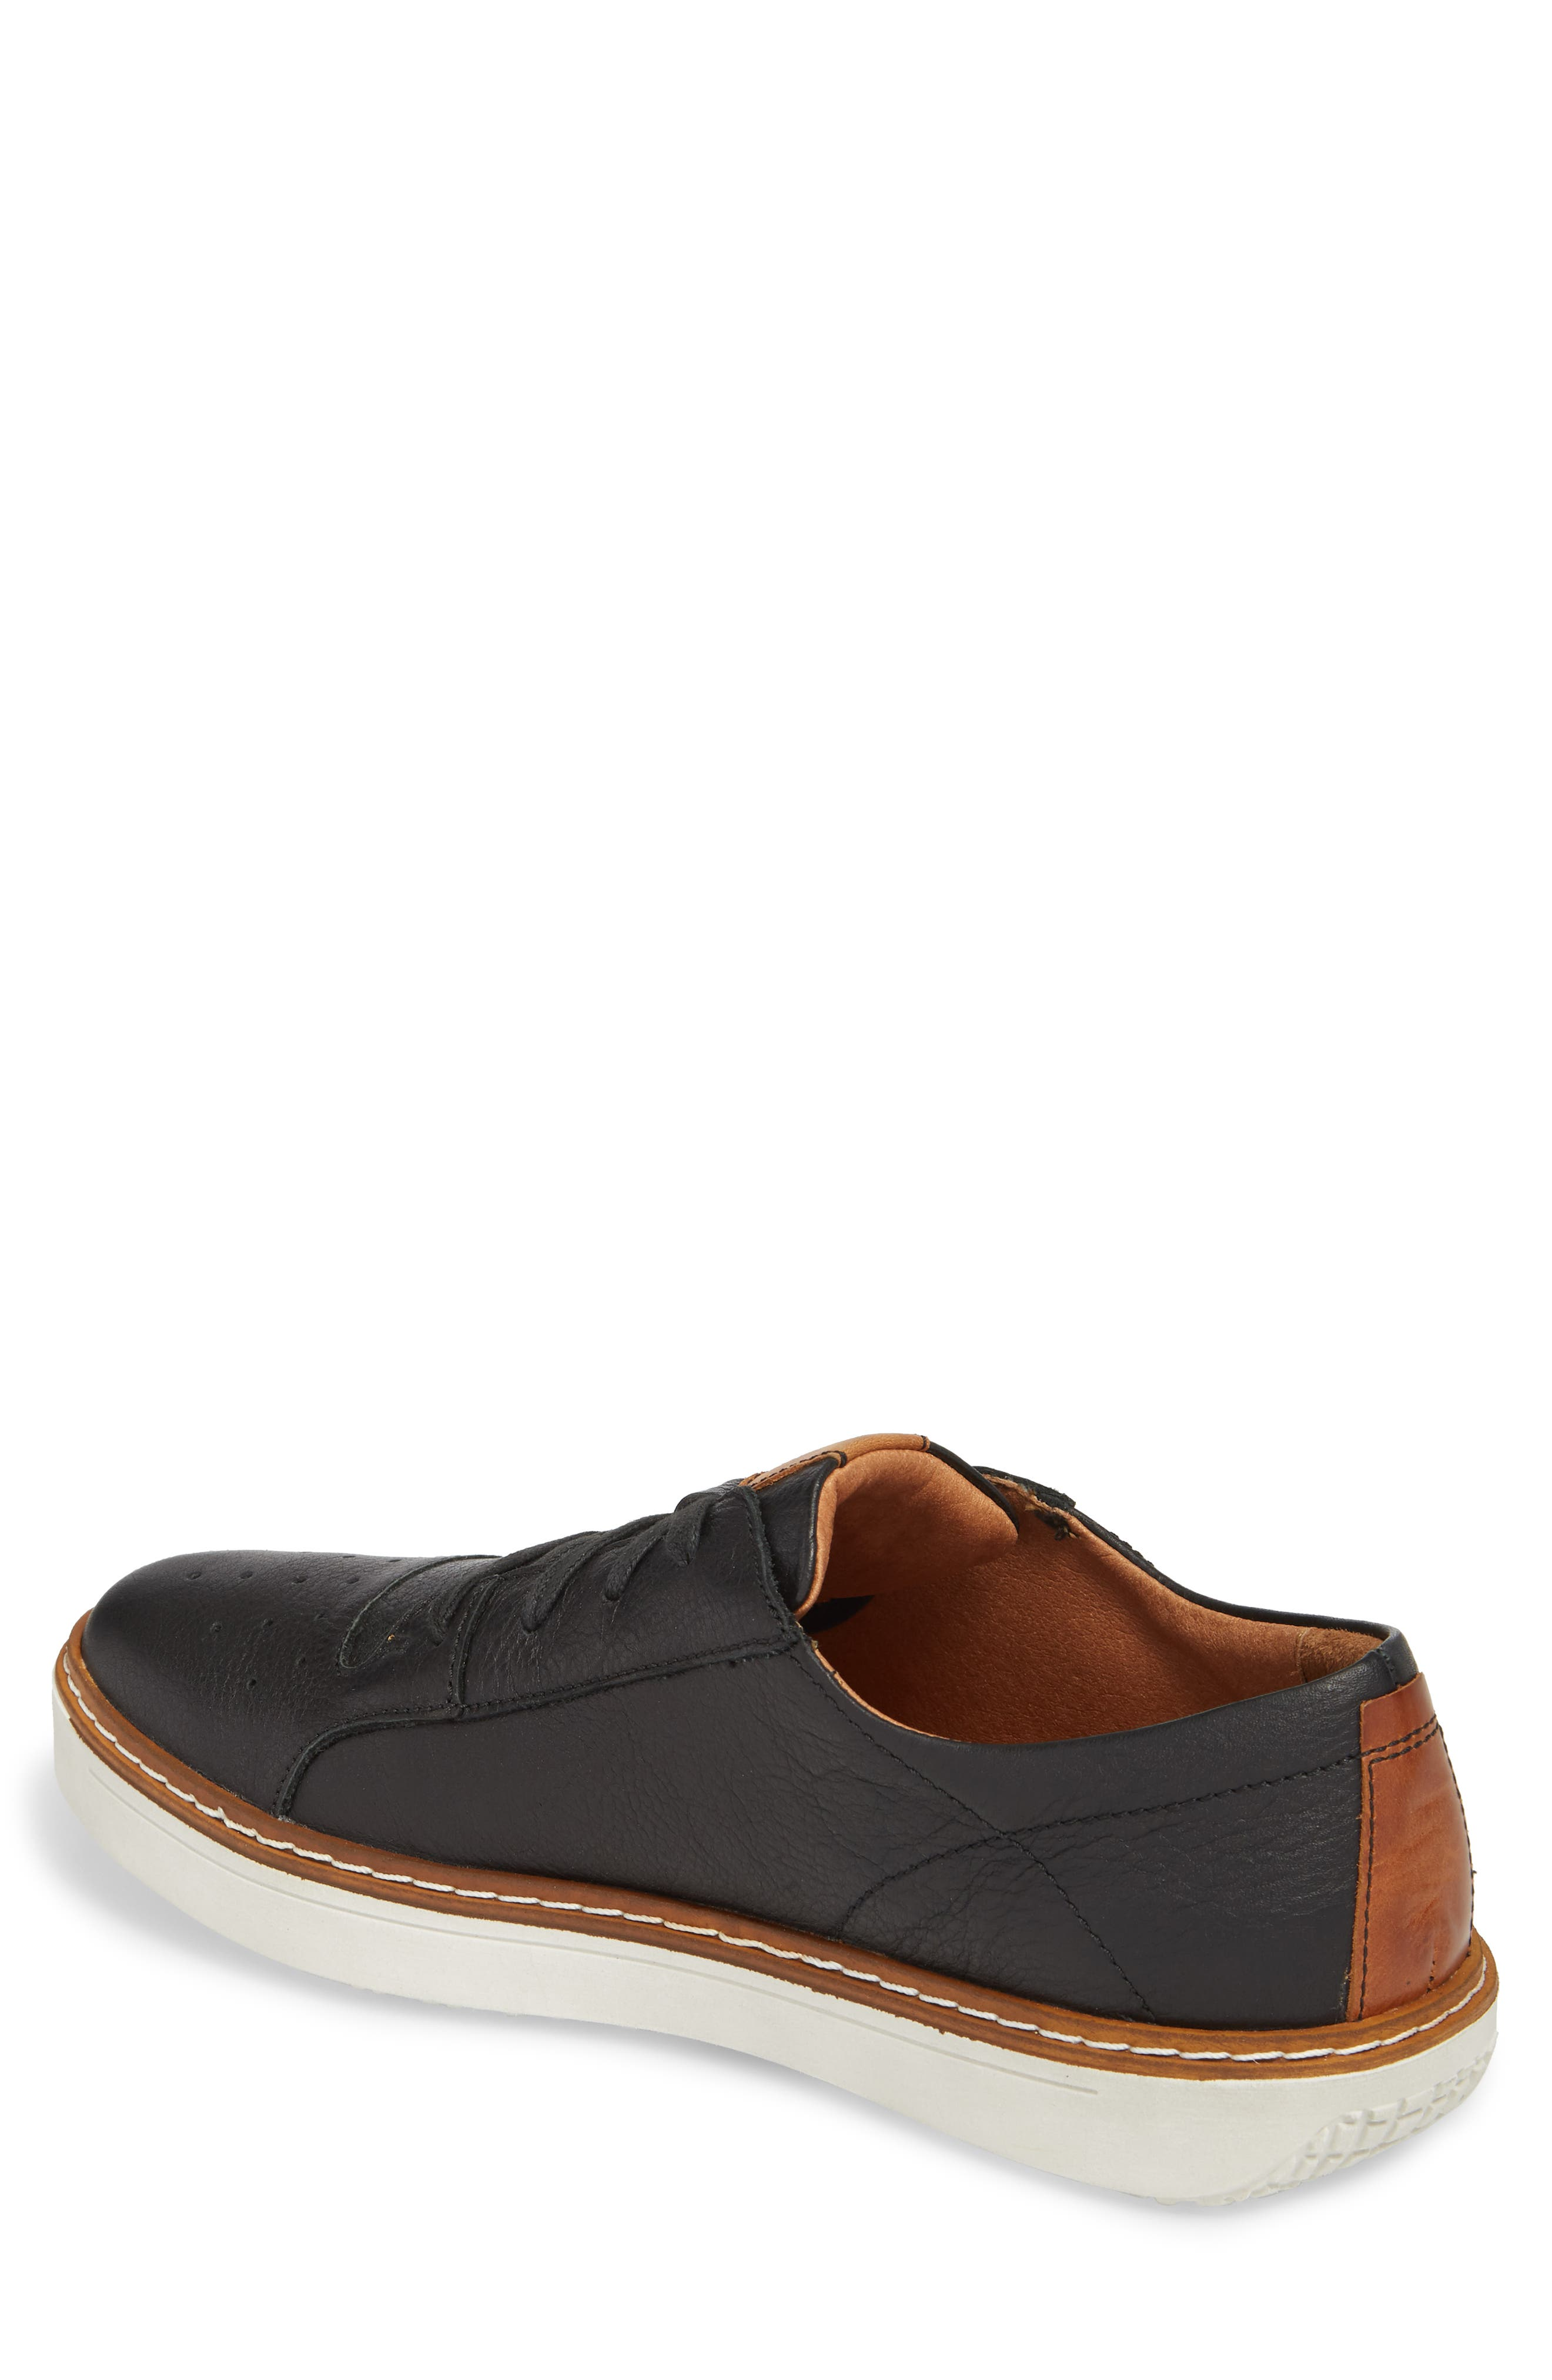 Quentin 03 Low Top Sneaker,                             Alternate thumbnail 2, color,                             BLACK KOMBI LEATHER